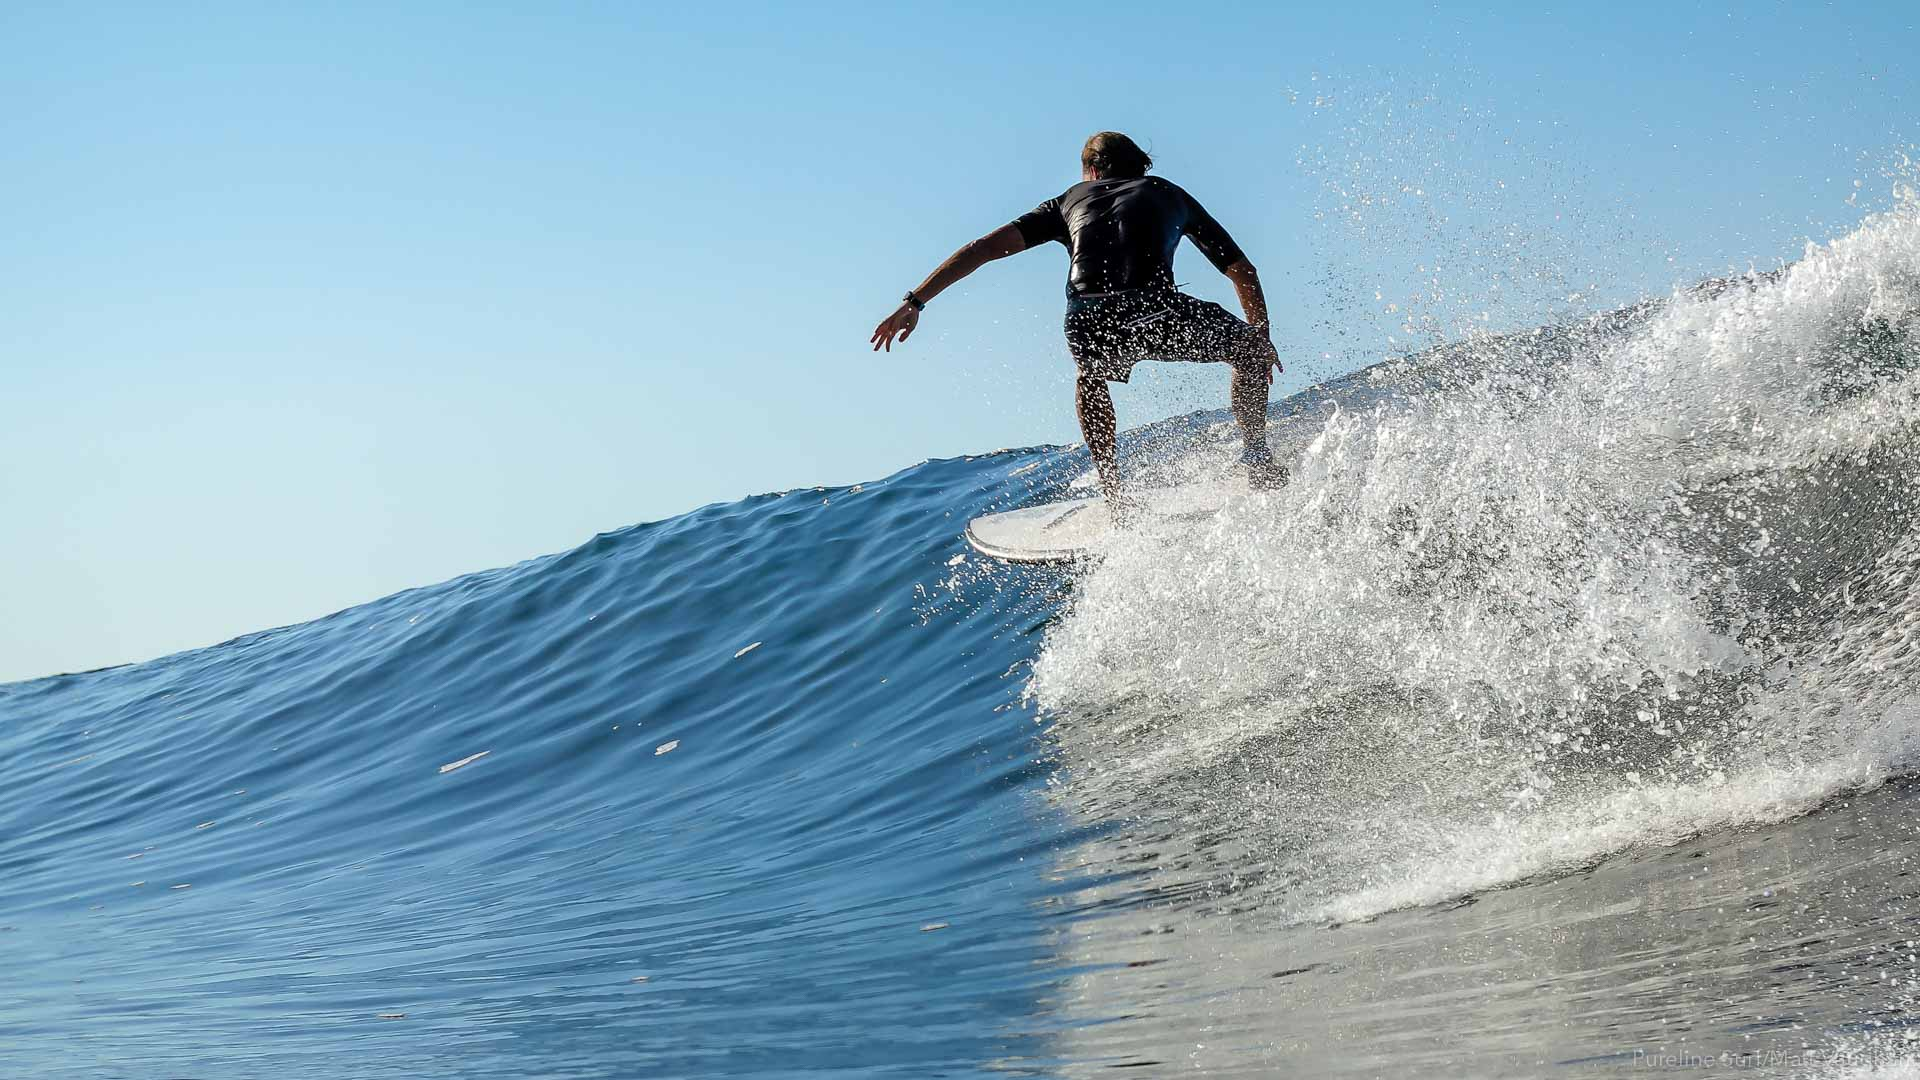 A Pureline Surf Coaching client taking a high line on a perfect wave during a private session.